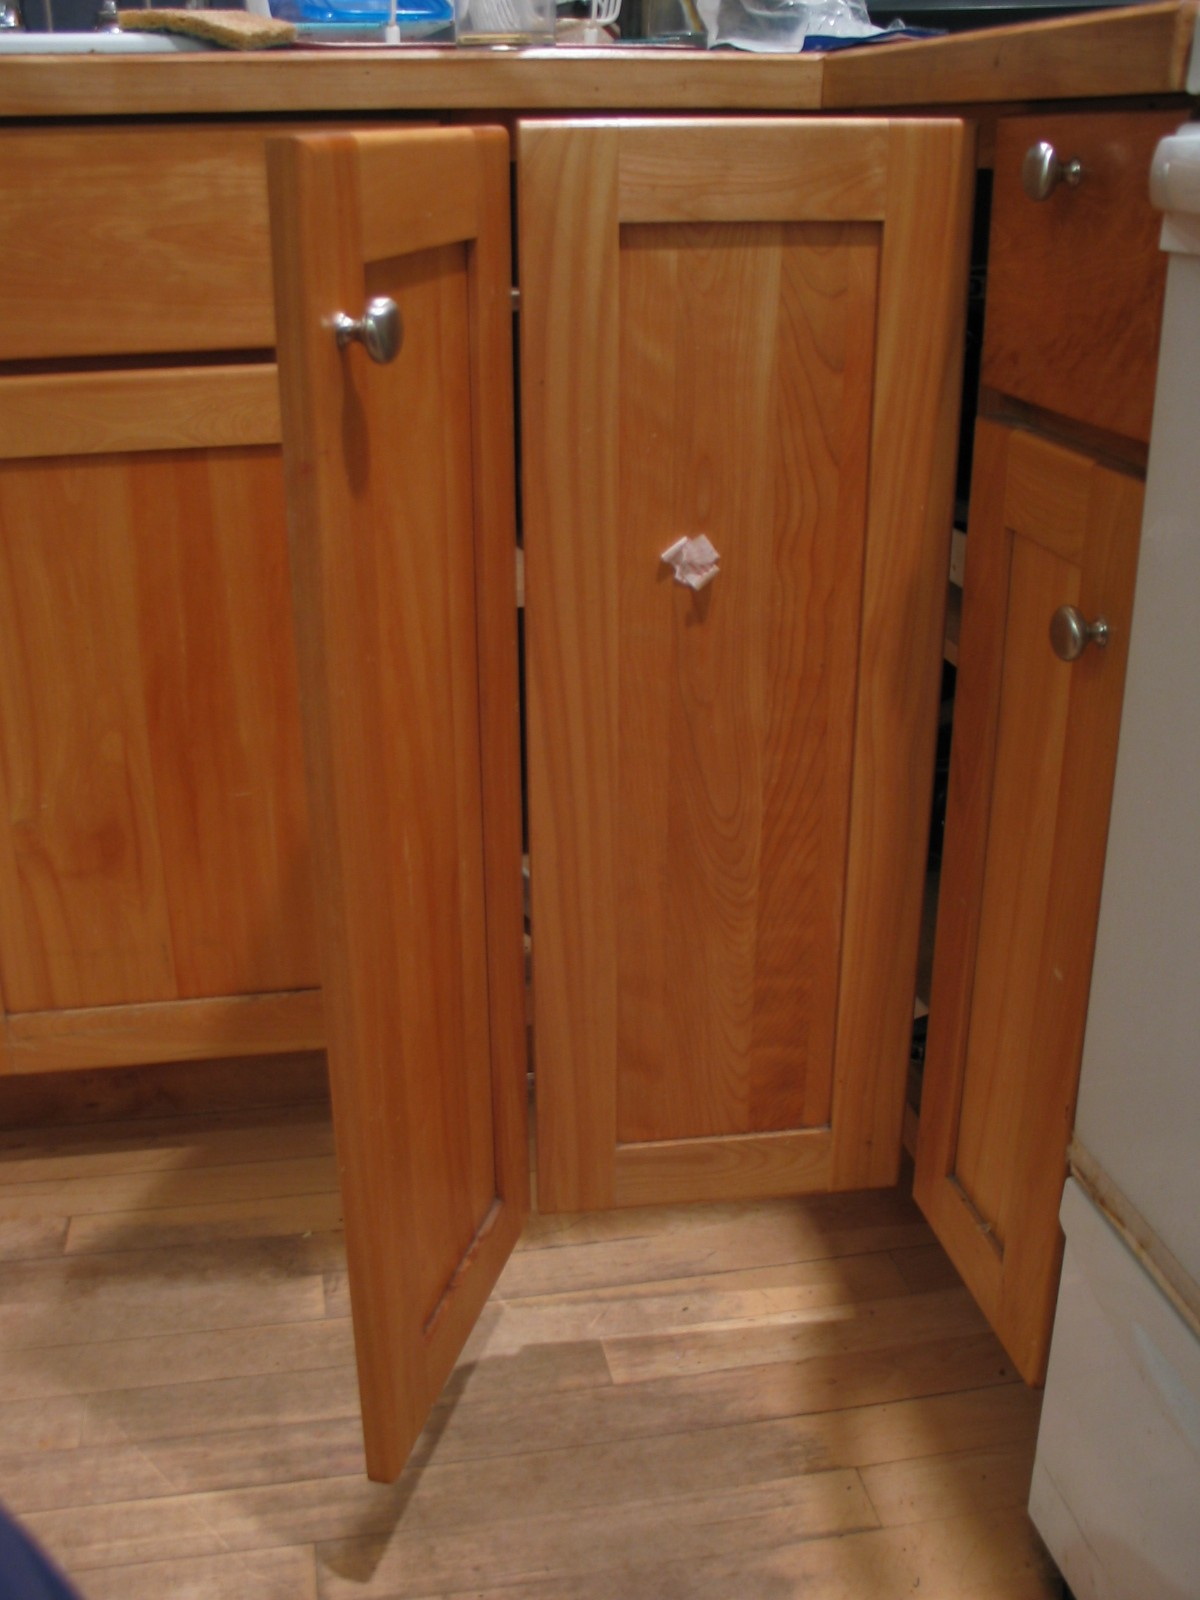 Cupboard Doors Double Hinged Cupboard No Problem After Gadget